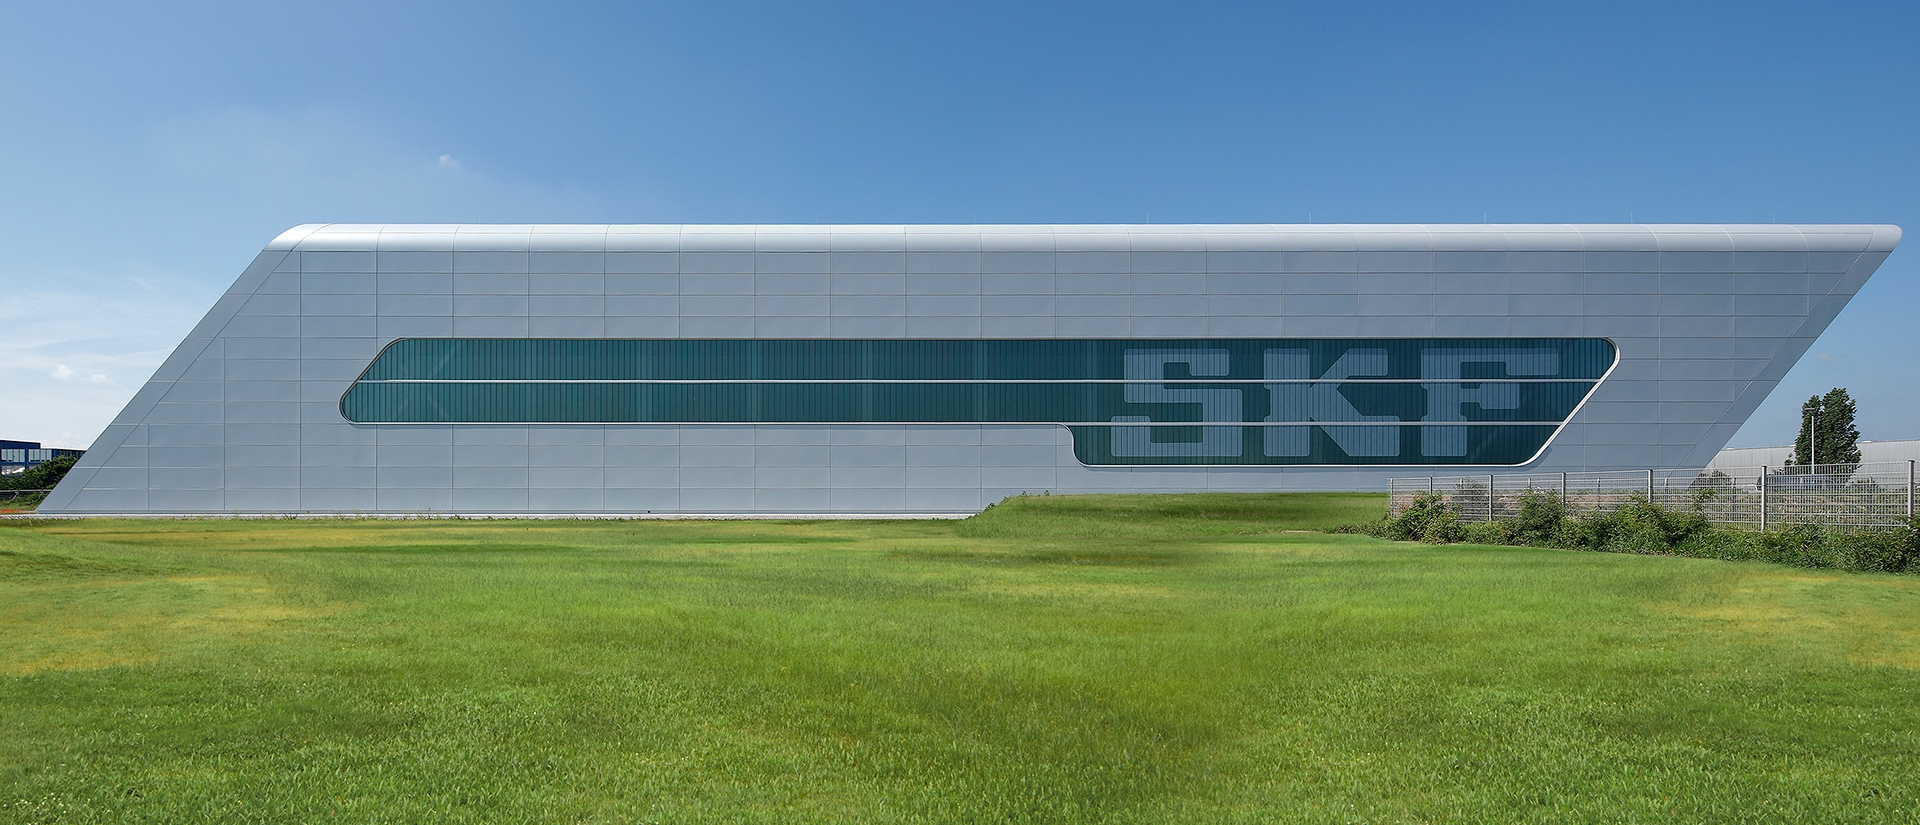 SKF Sven Wingquist Test Center